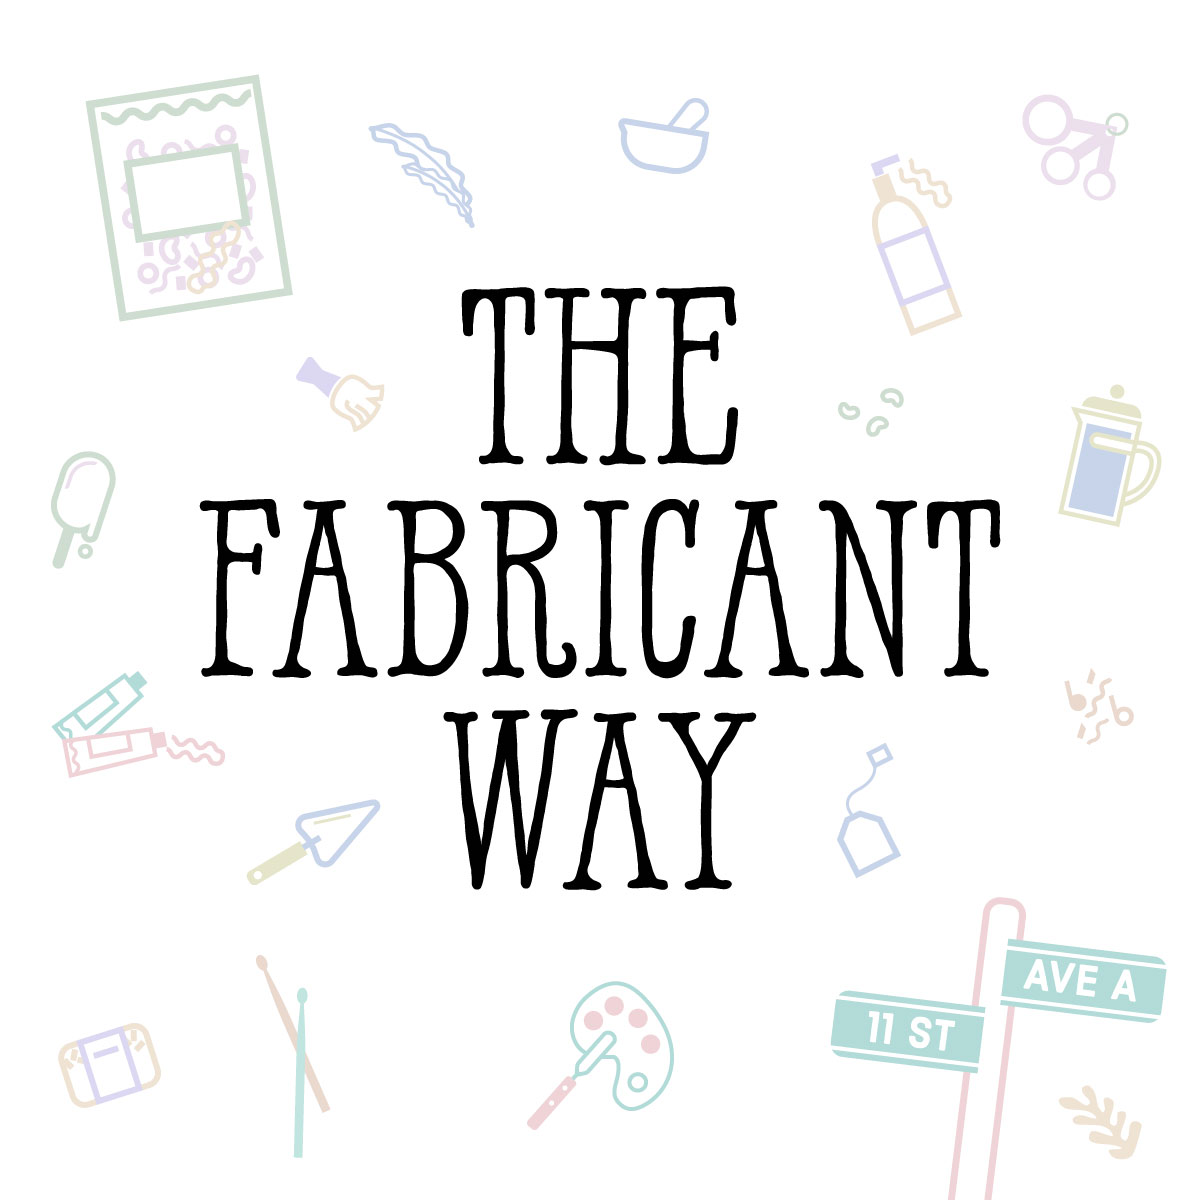 The Fabricant Way: Gabriela Davogustto